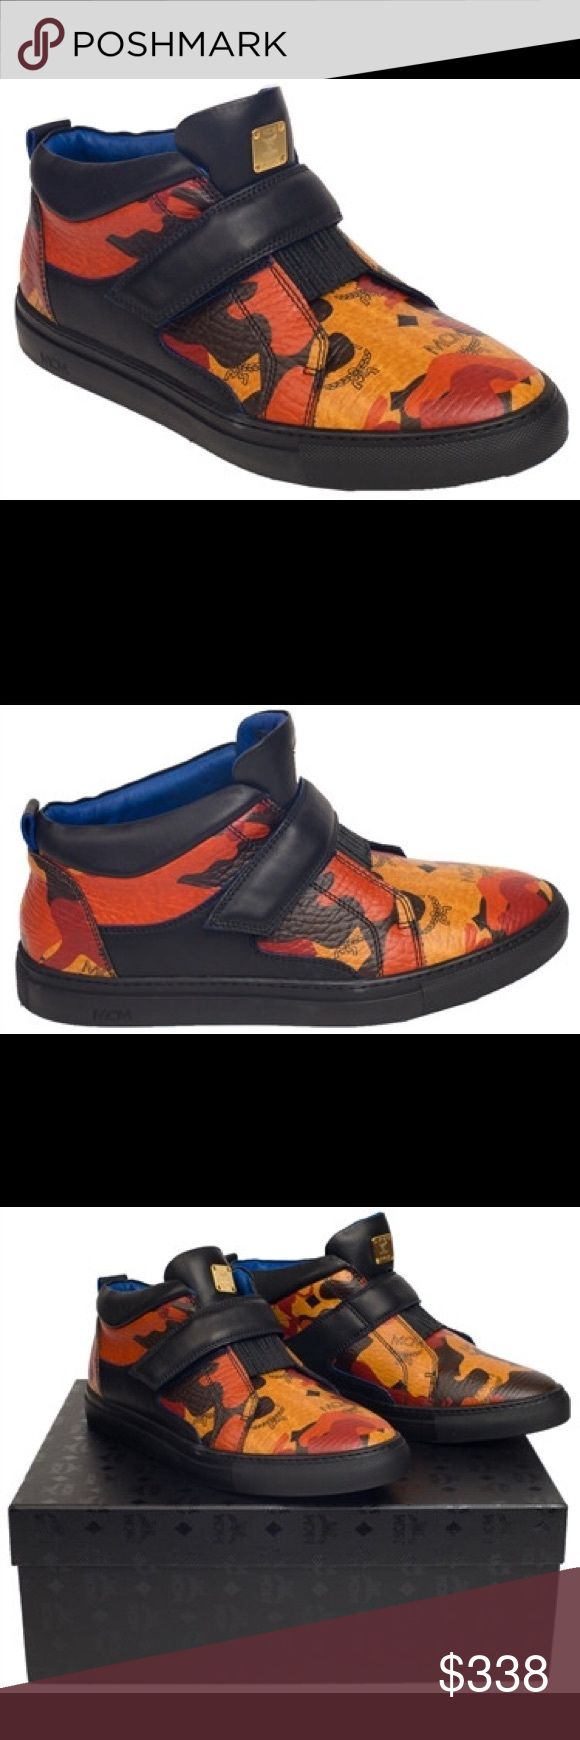 Mcm Shoes WILL COME BRAND NEW WITH TAGS AND RECEIPTS. Contact me To lower the price too 270$ 219-256-6777 or            INSTAGRAM:davidfrm072 MCM Shoes Sneakers